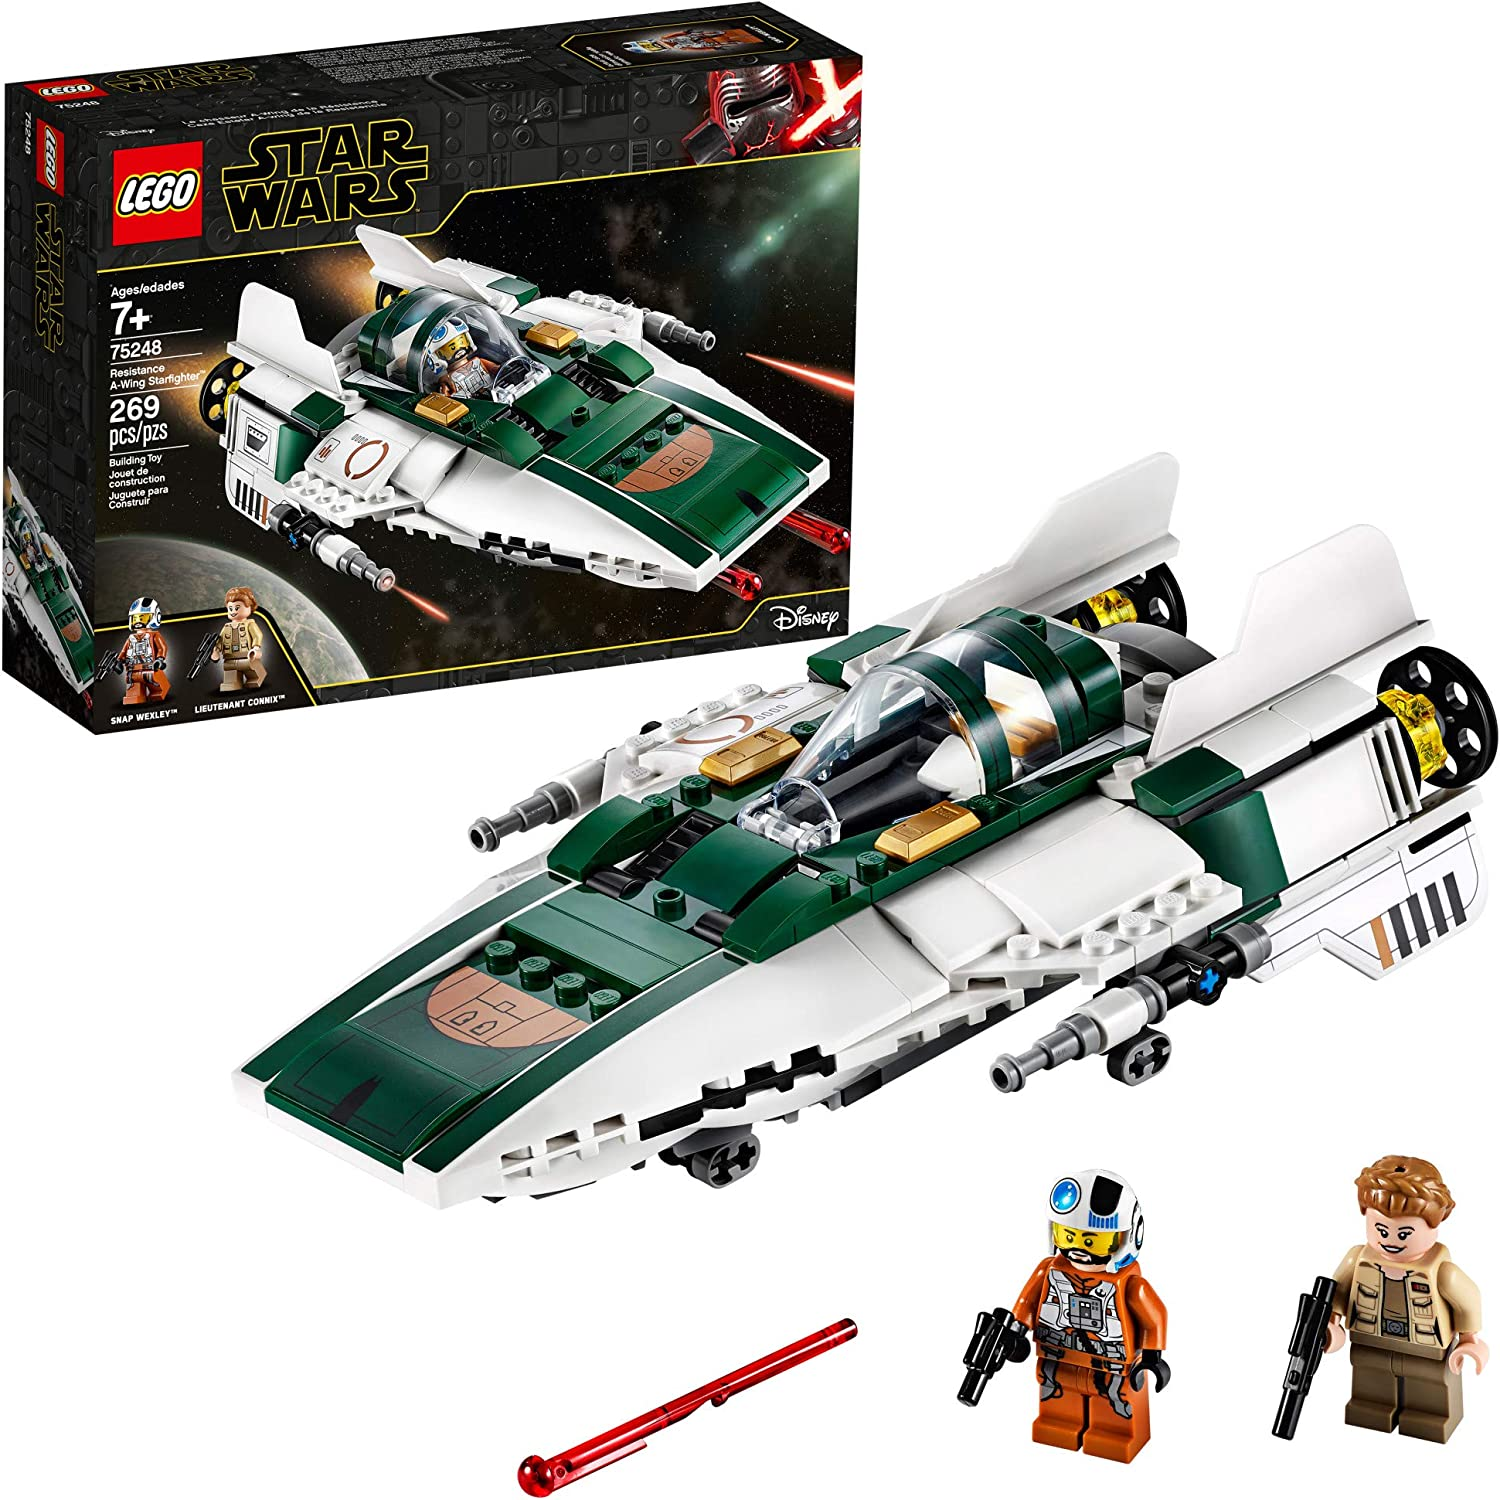 LEGO Star Wars: The Rise of Skywalker Resistance A-Wing Starfighter 75248 Advanced Collectible Starship Model Building Kit, New 2019 (269 Pieces)